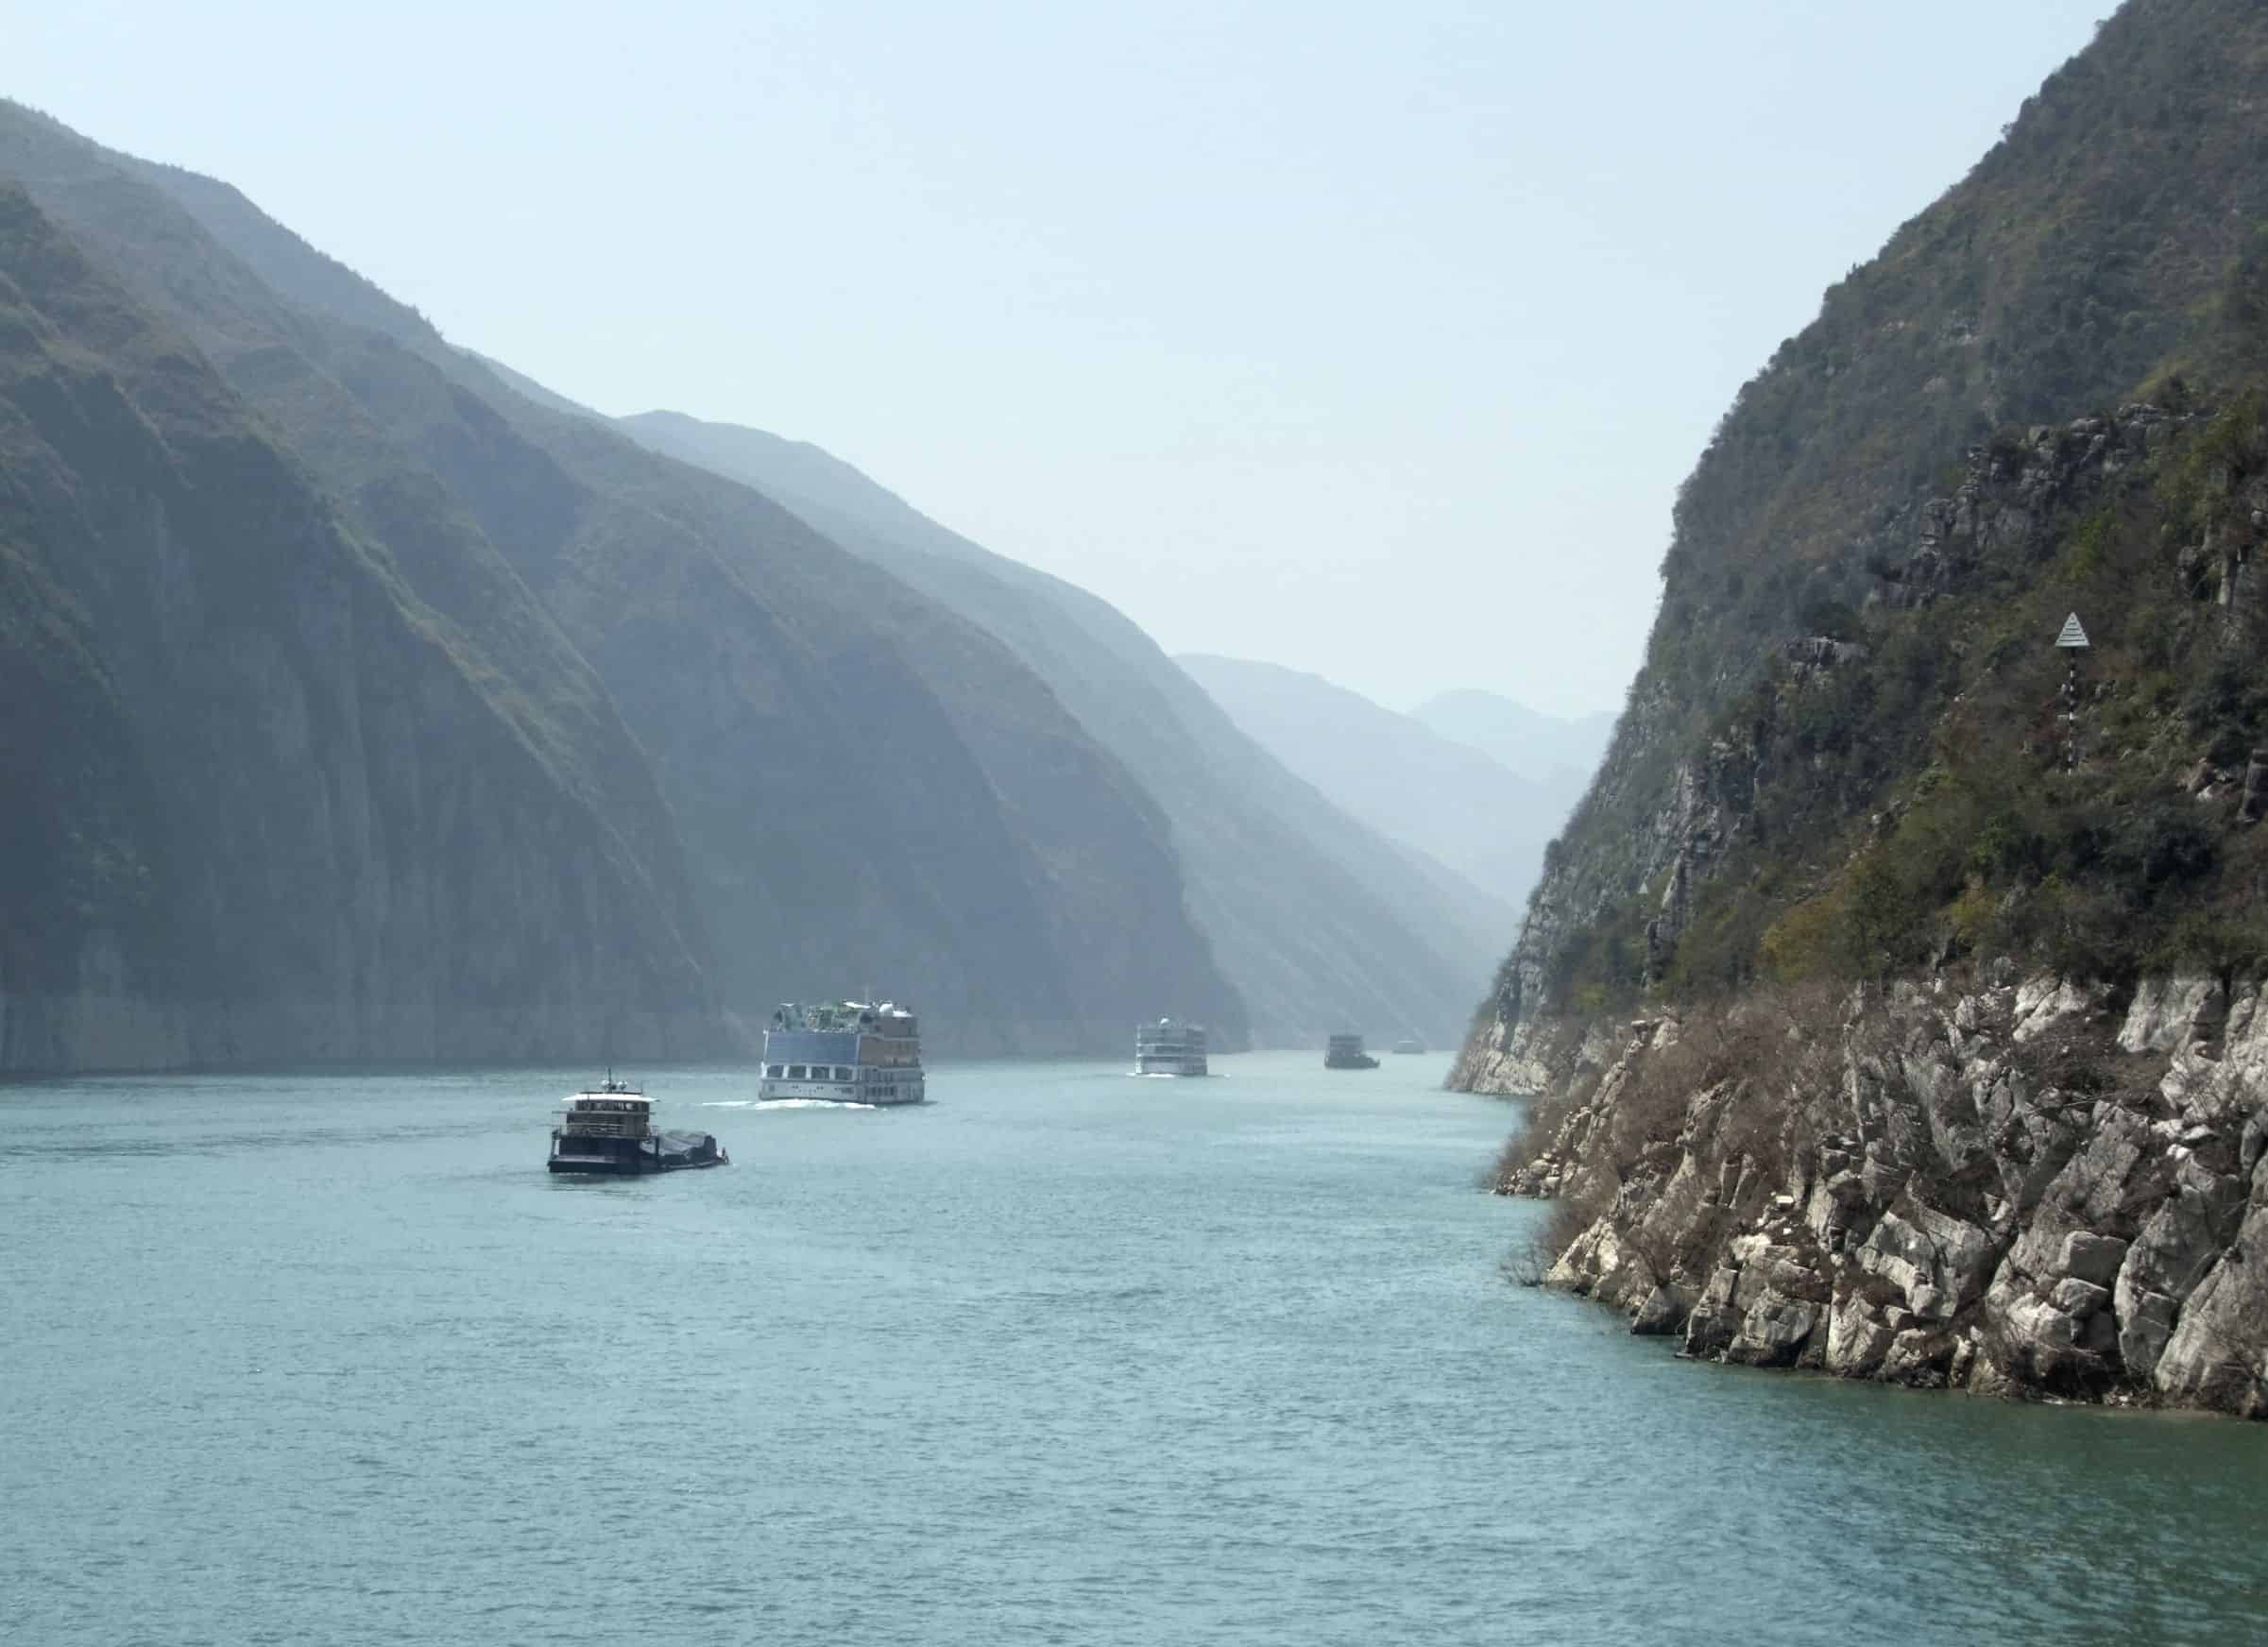 Foggy scenery along the Yangtze River in China including some ships and mountains